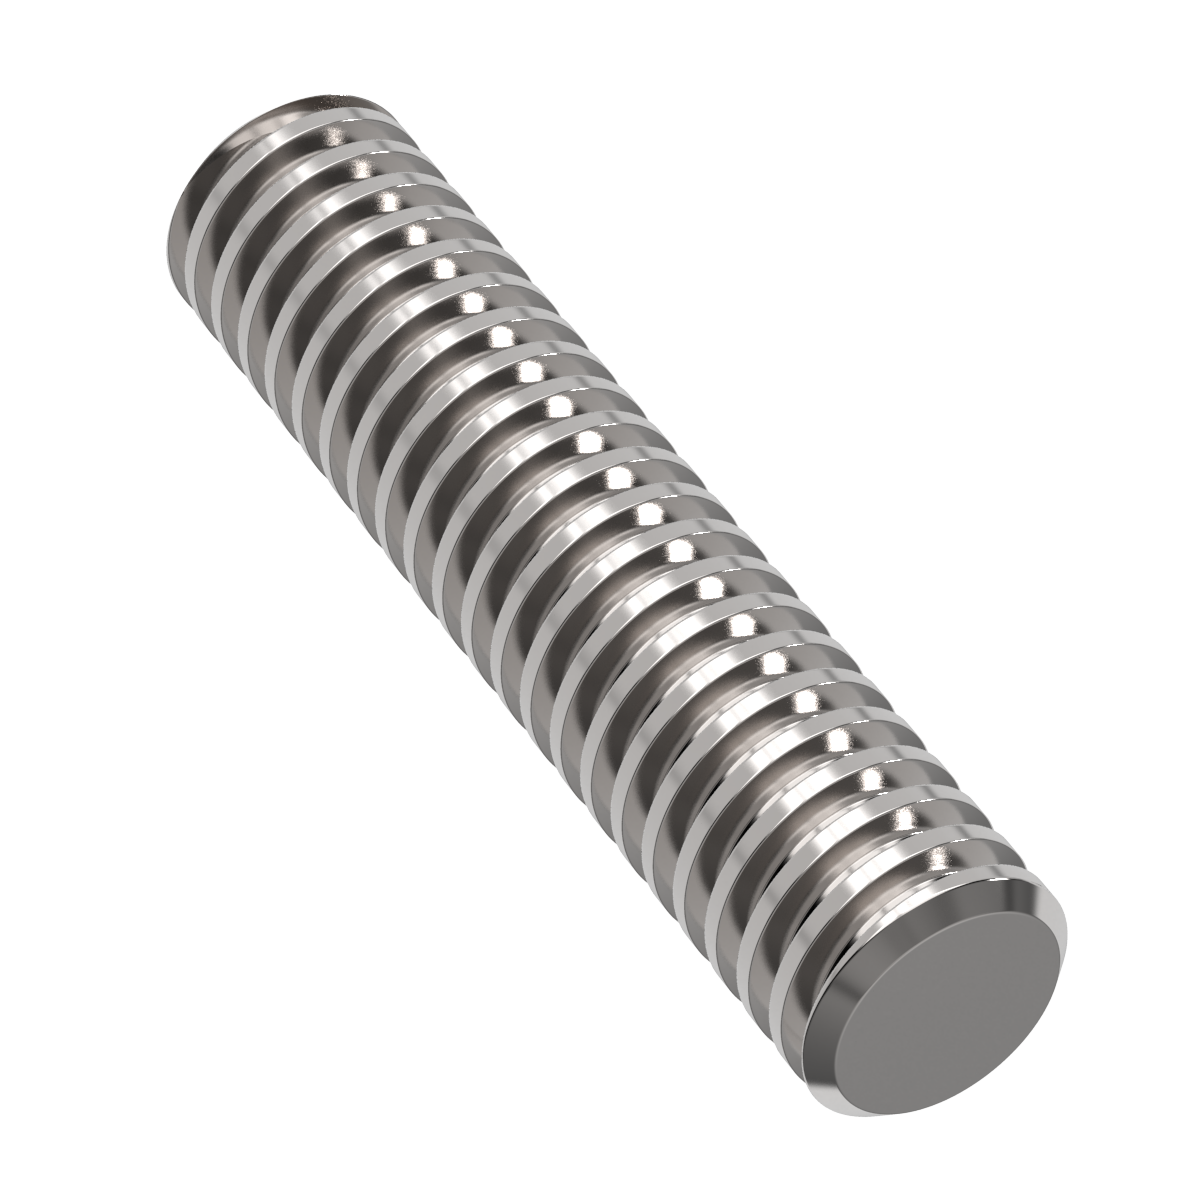 062500LS Lead Screw